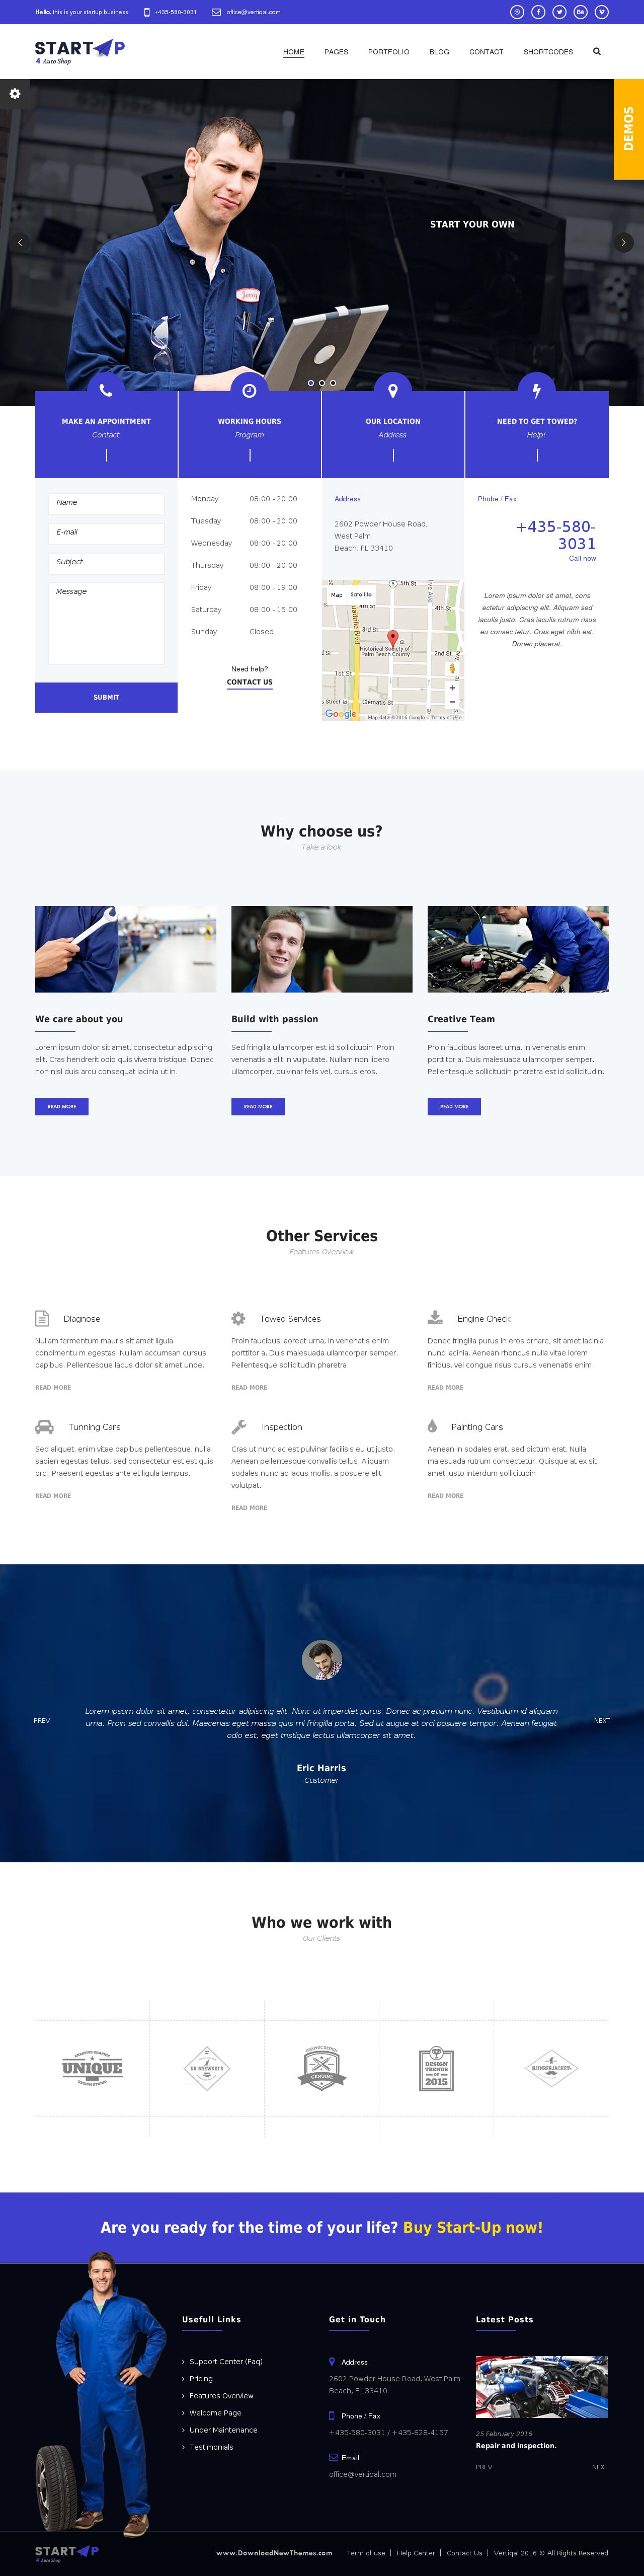 Start basic business html5 css3 template template business startup basic business html5 css3 template startup has all the features an auto shop or a mechanic needs from online appointments to schedule and maxwellsz